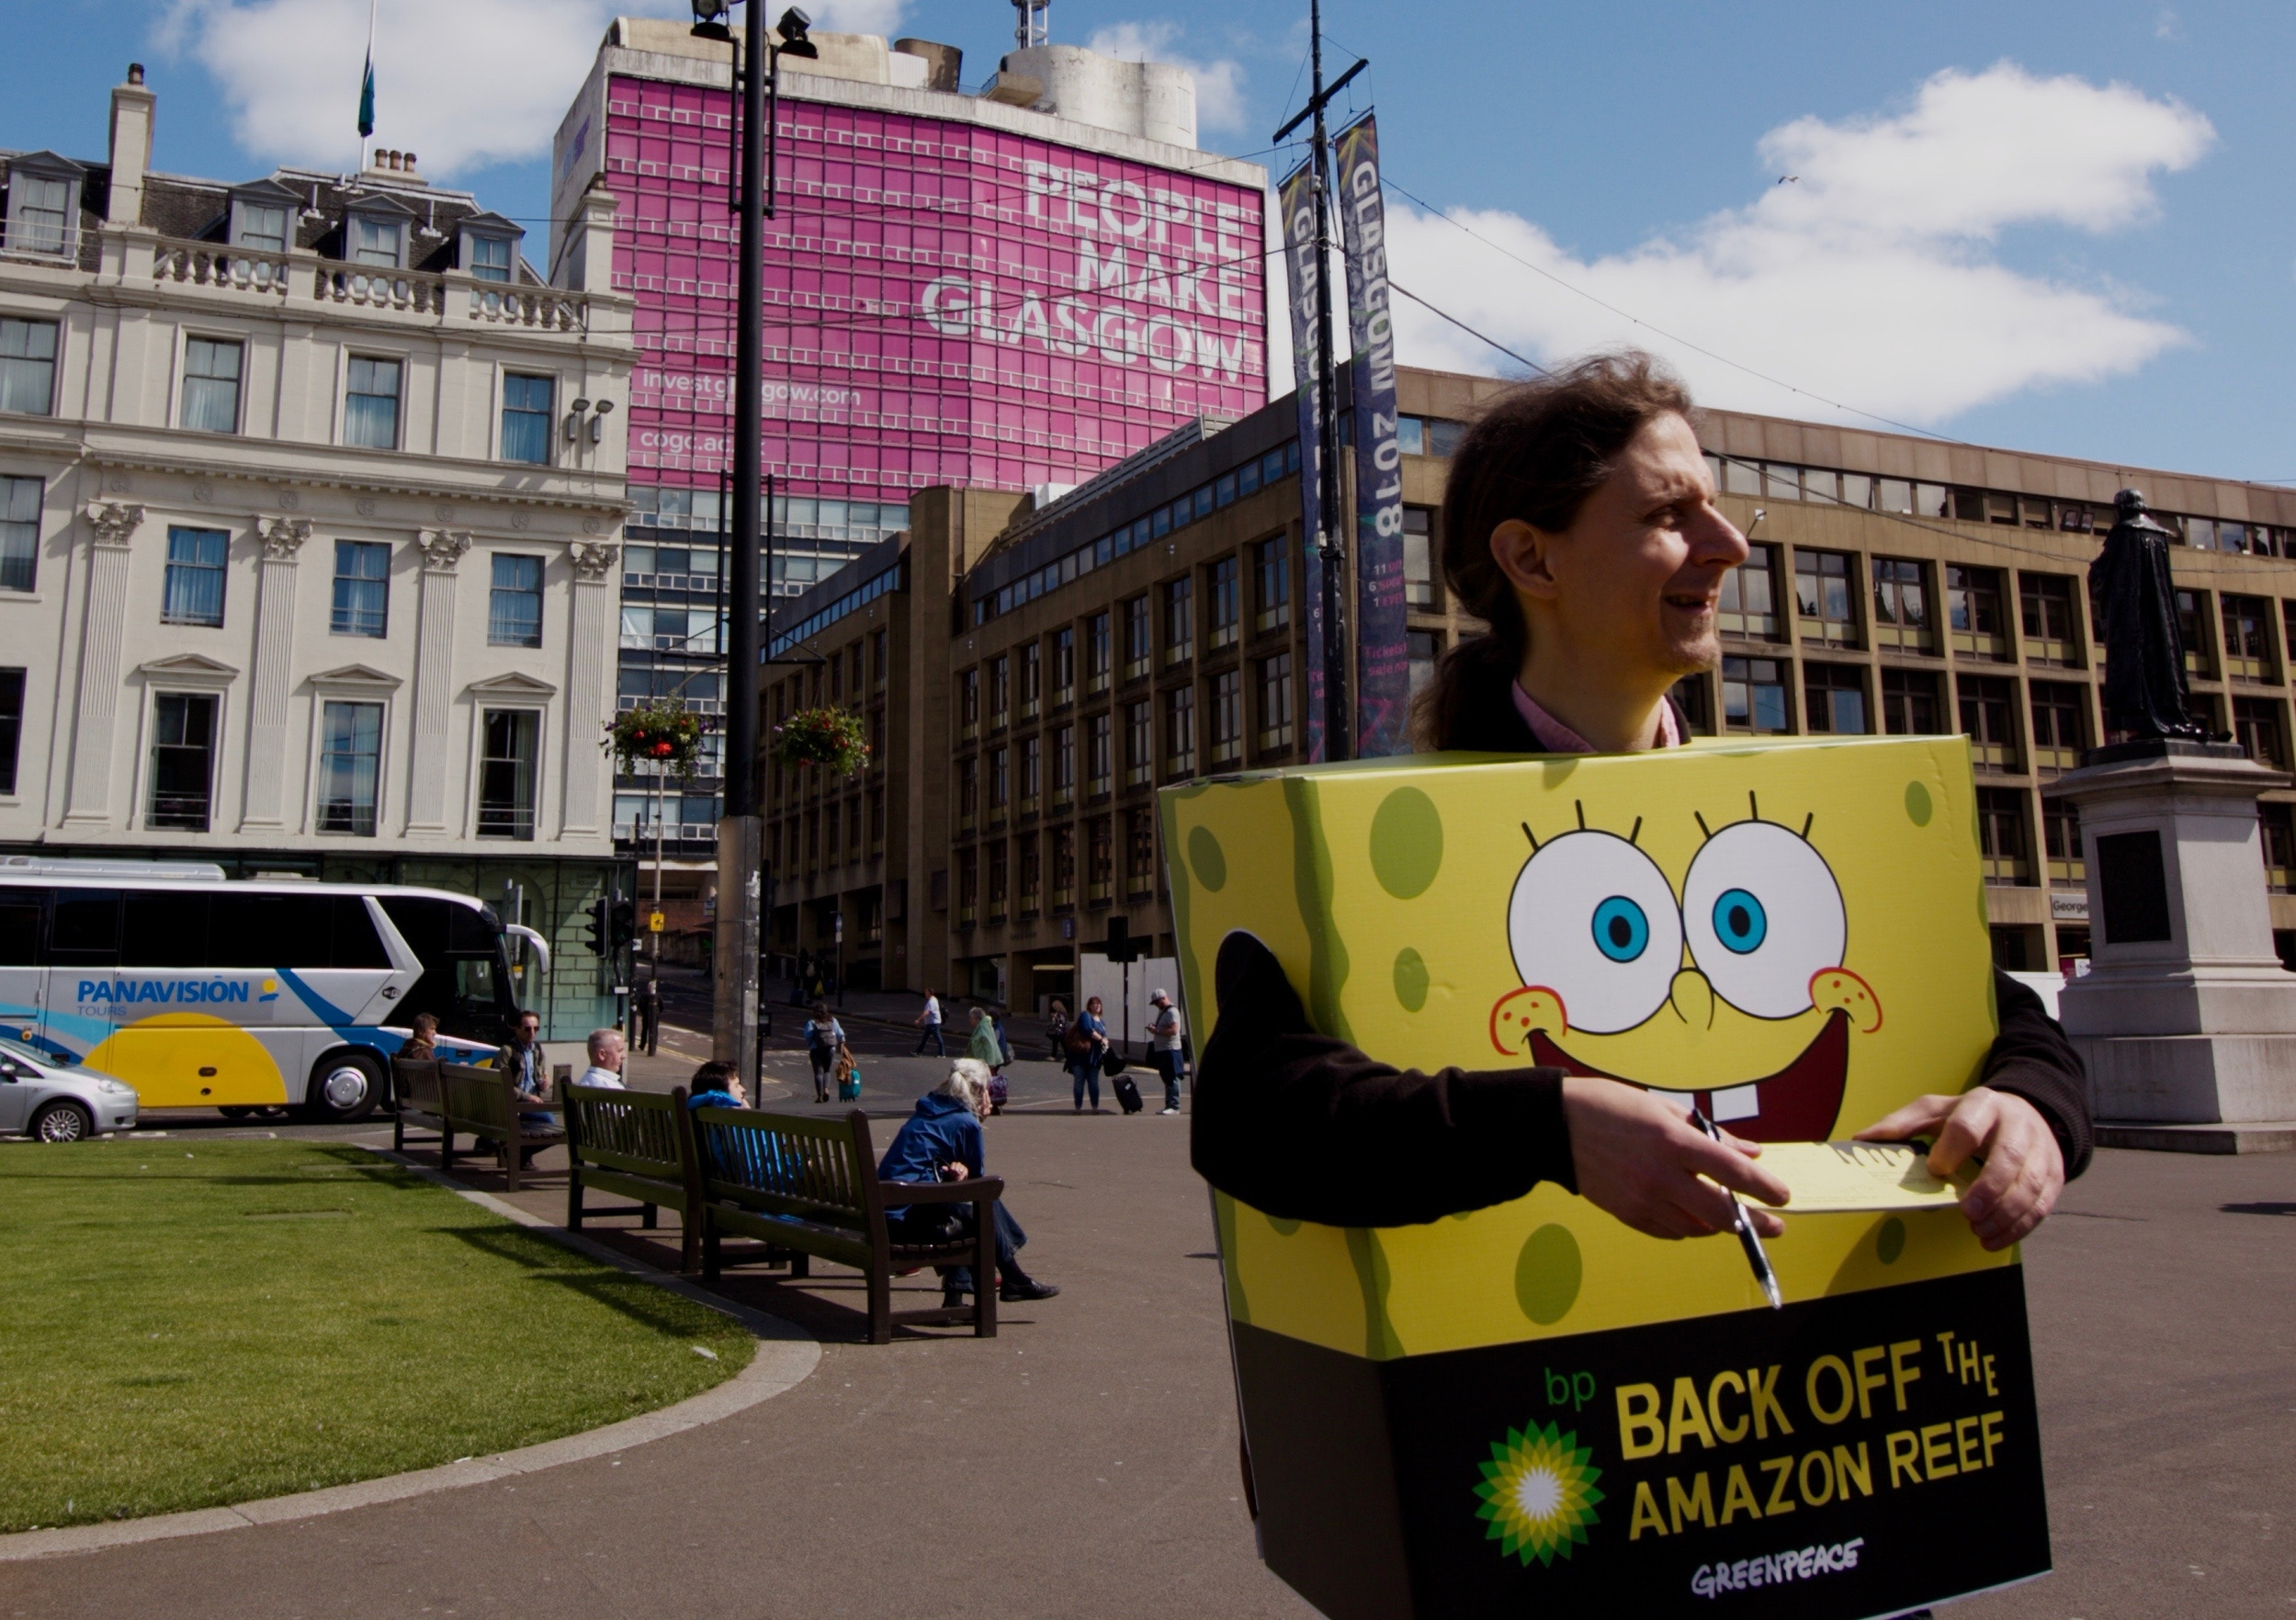 Greenpeace volunteer in Spongebob Squarepants costume